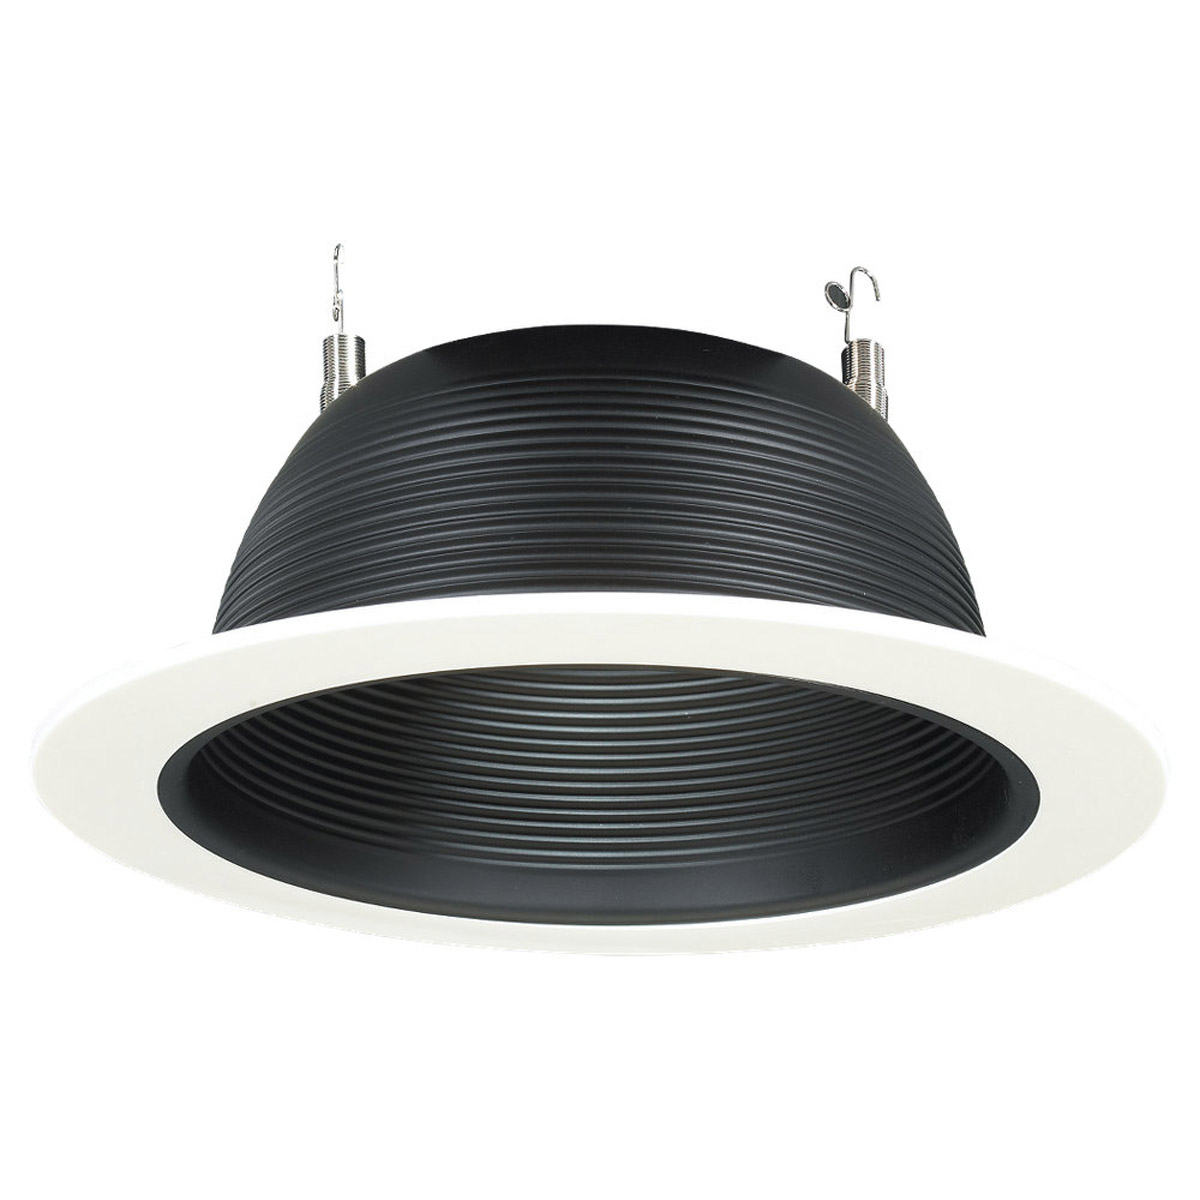 Sea Gull Lighting Signature Recessed Trim Only in White 1126-15